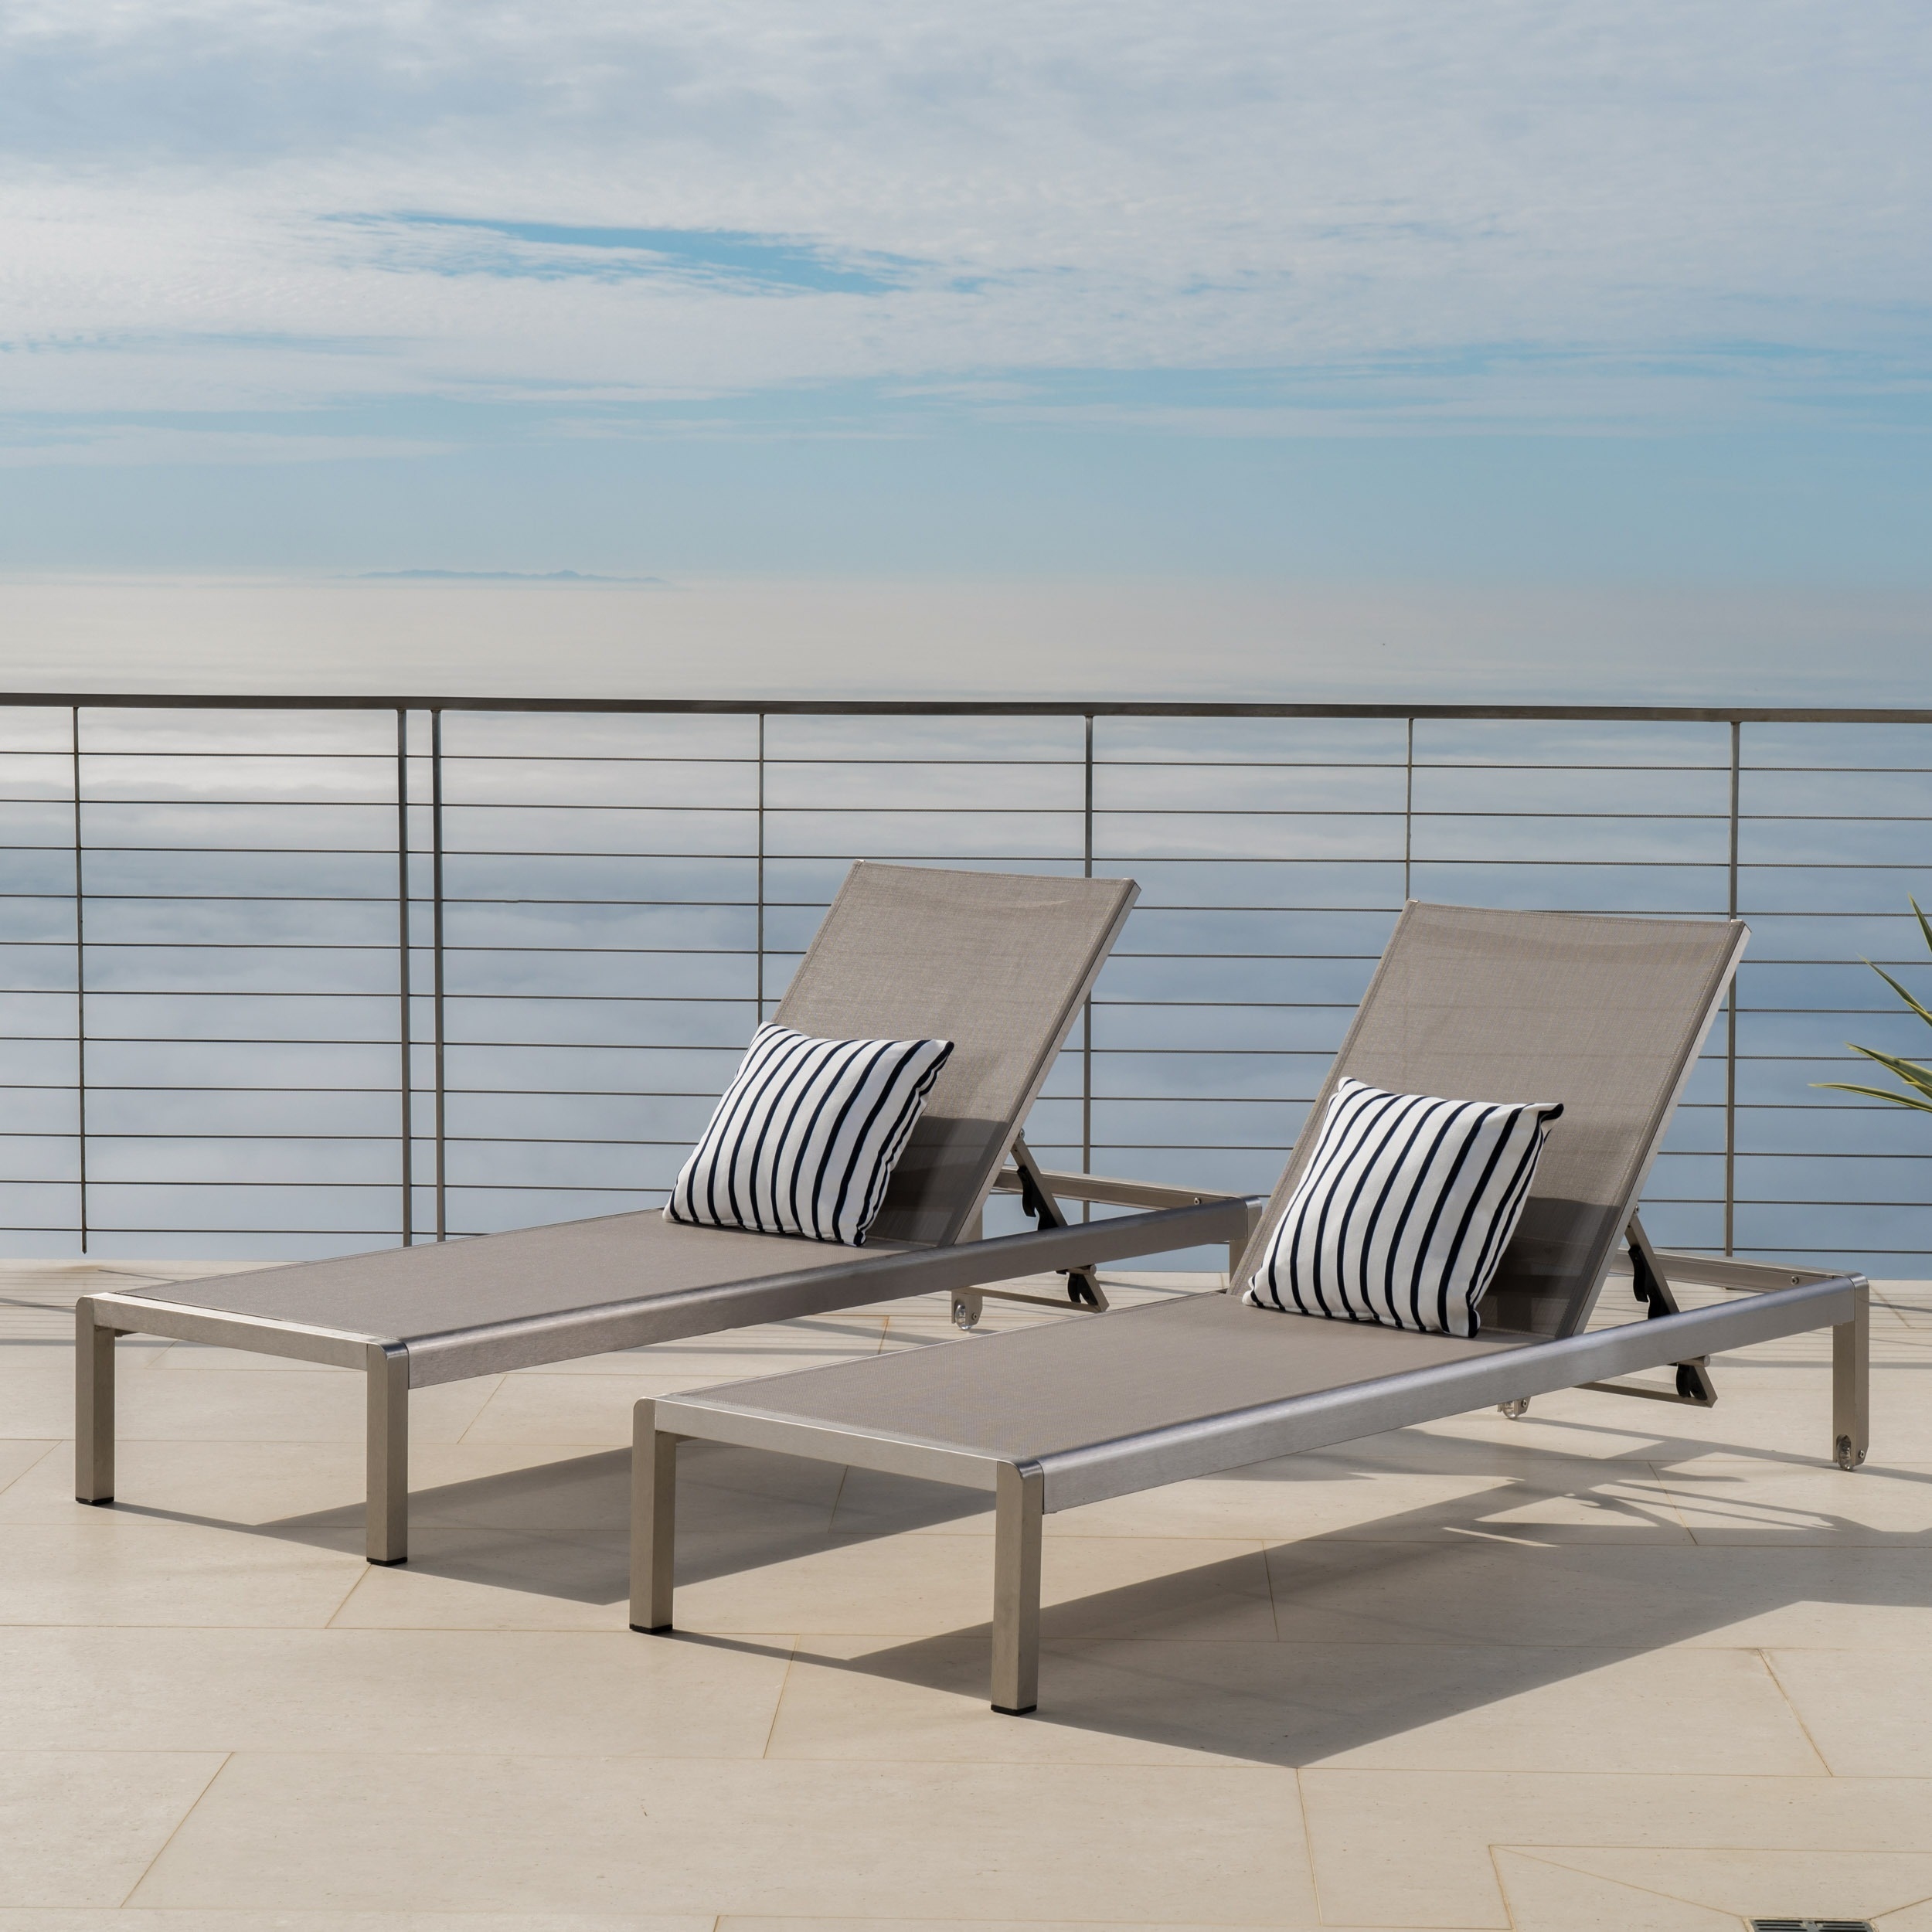 Outdoor Grey Aluminum Chaise Lounge with Dark Grey Mesh Seat Crested Bay Patio Furniture